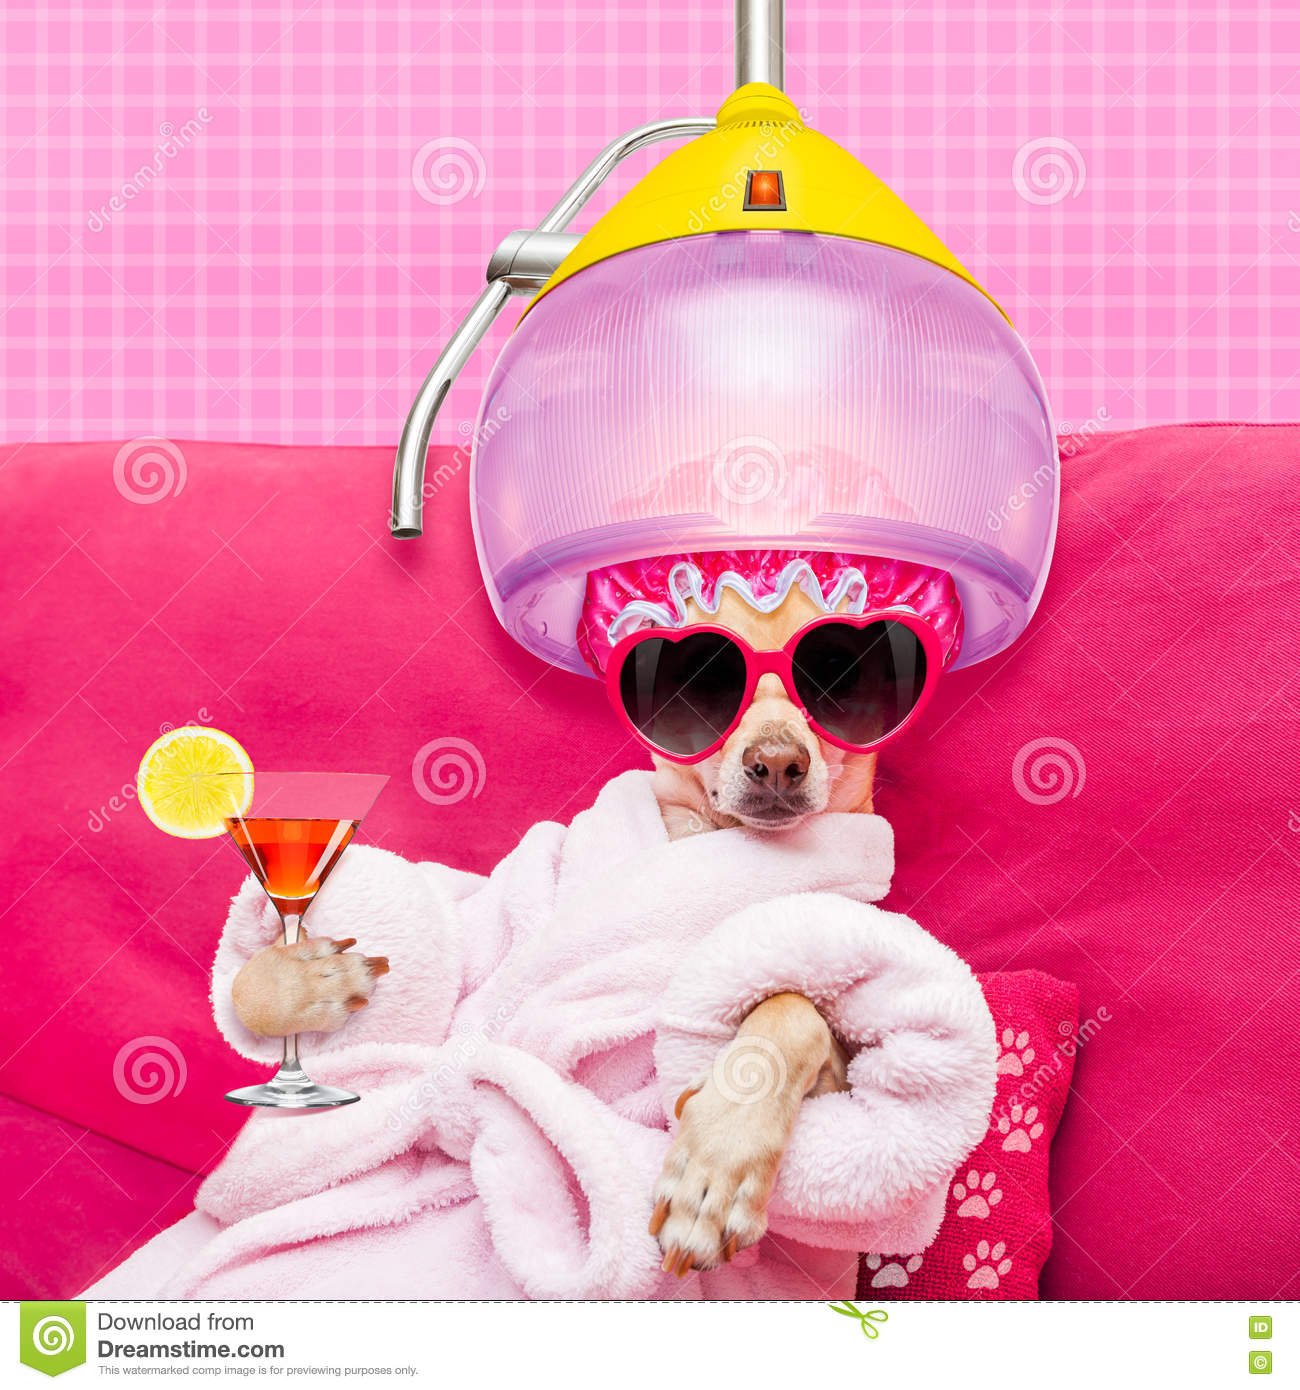 dog spa wellness stock photo   image 73801985